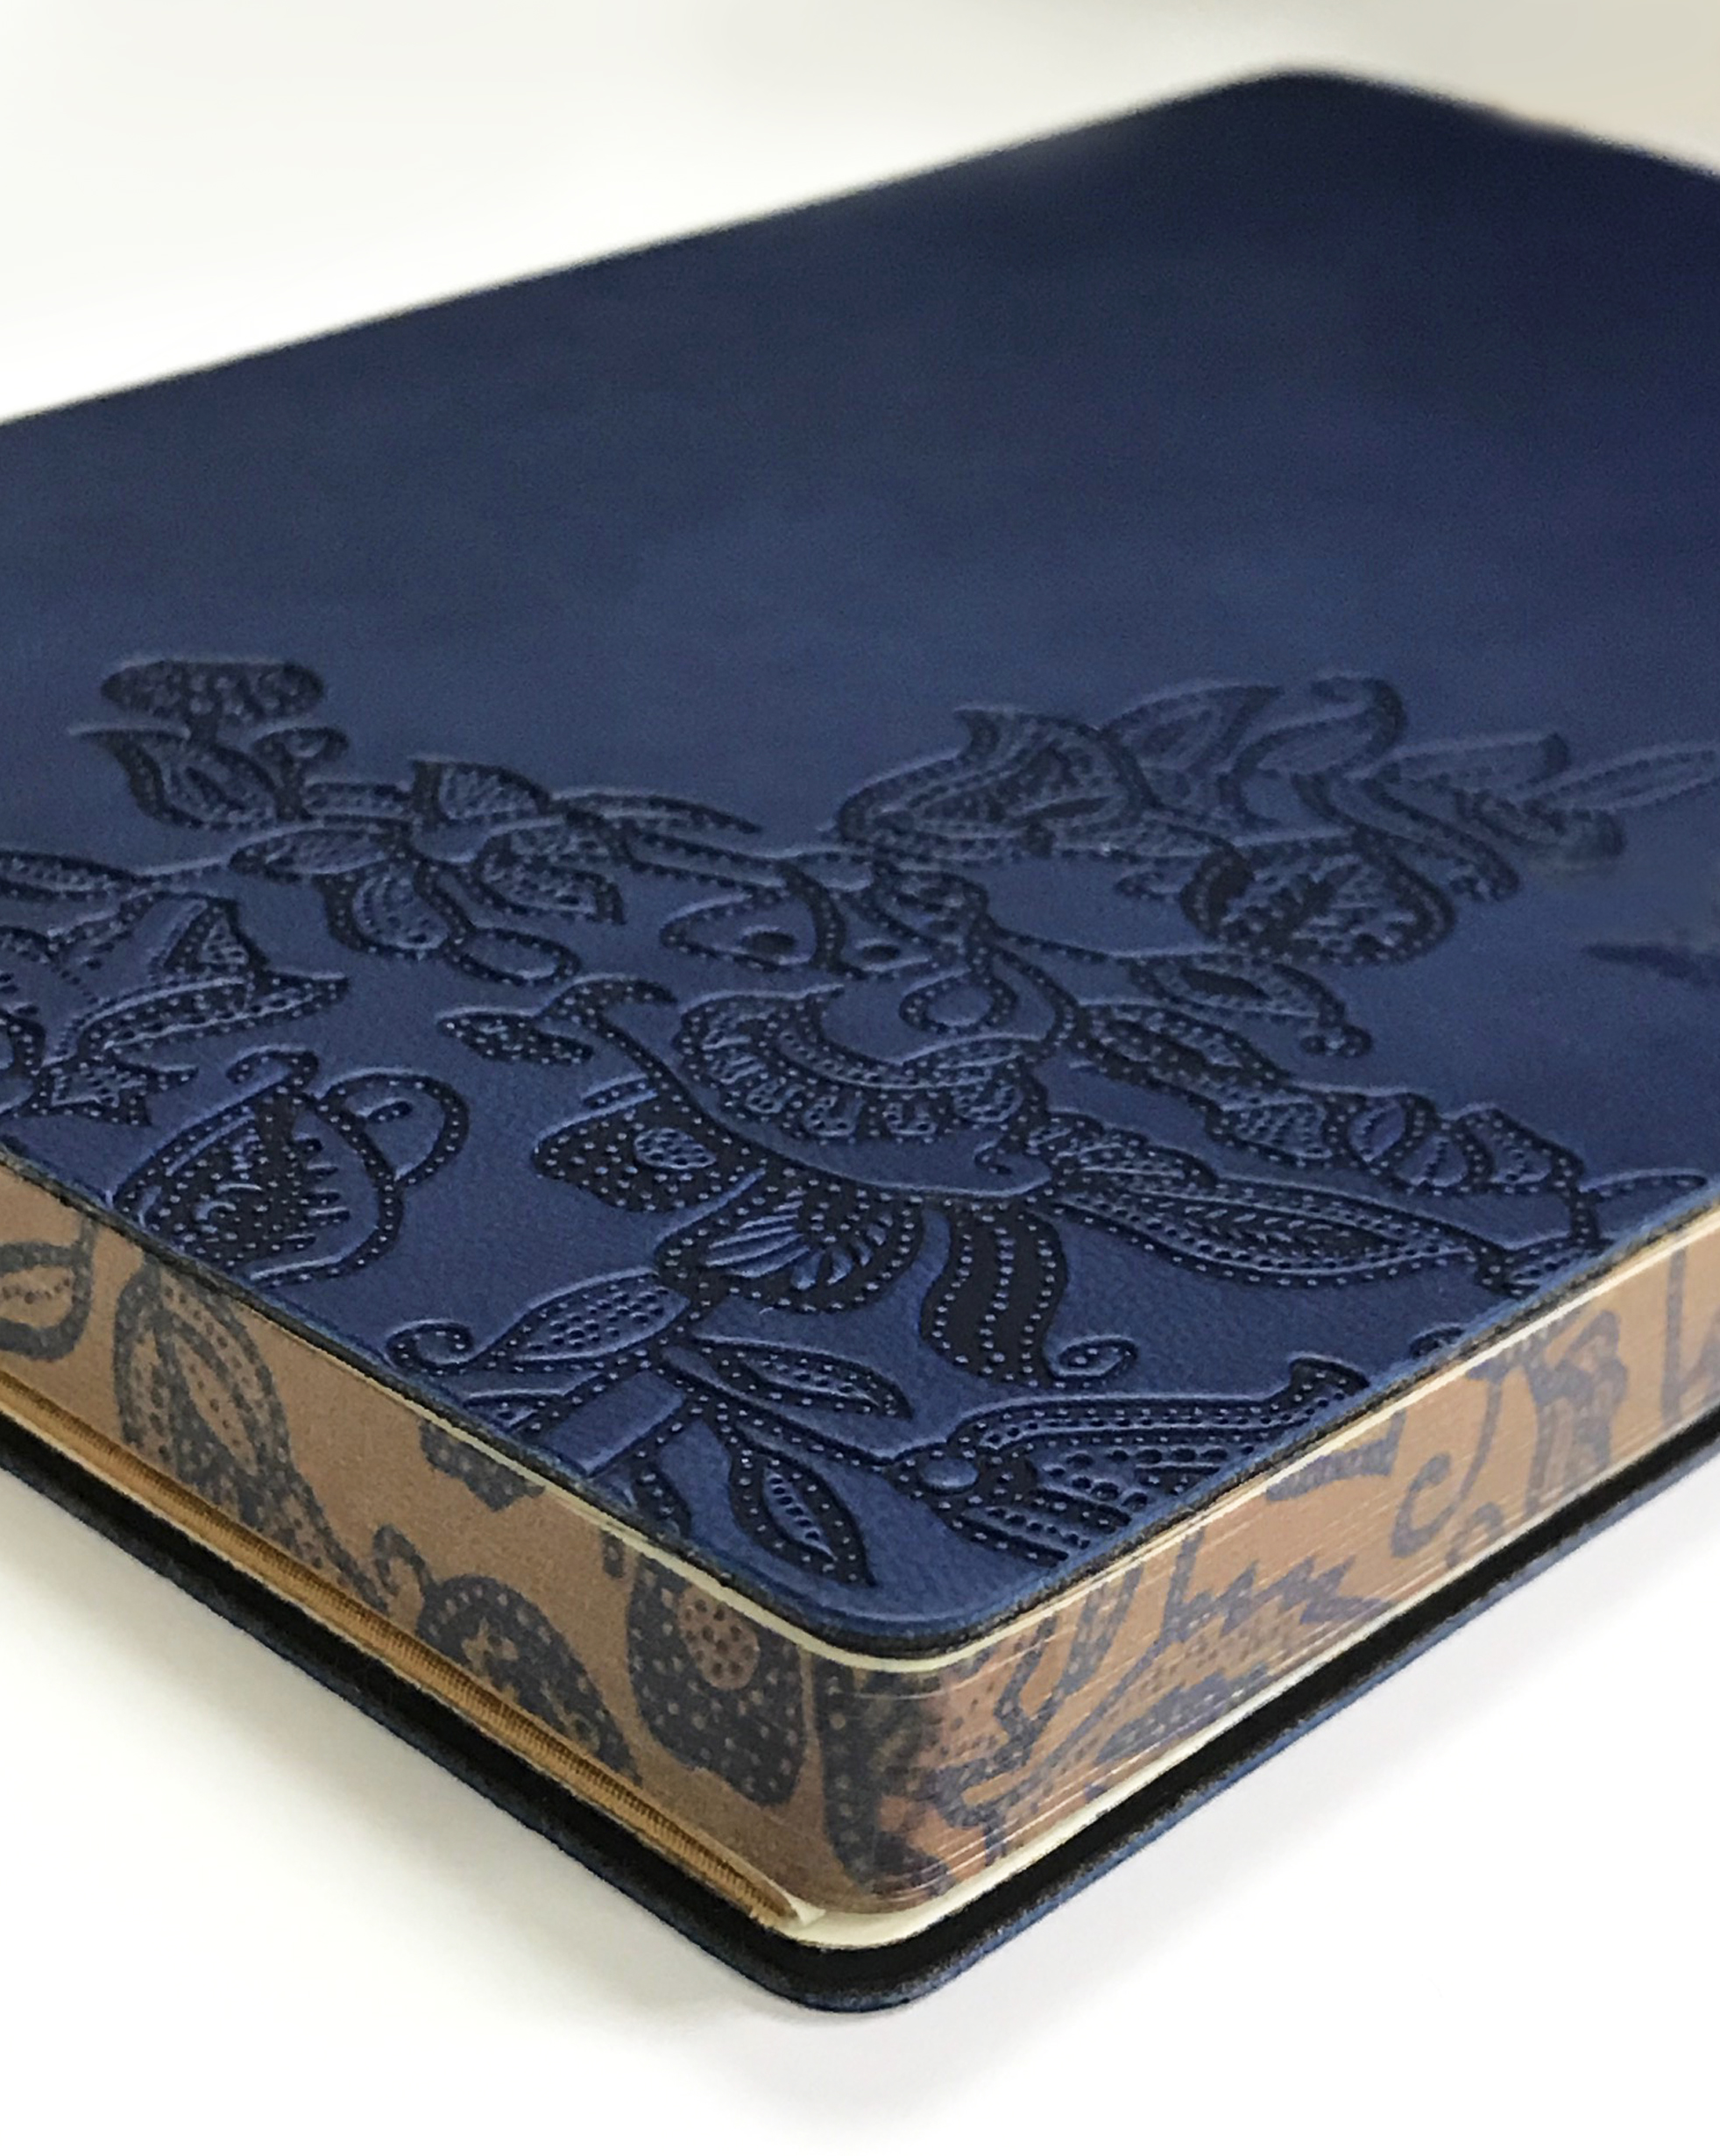 Own a limited-edition SIA Batik Journal by Collins on your next Singapore Airlines flight - Alvinology